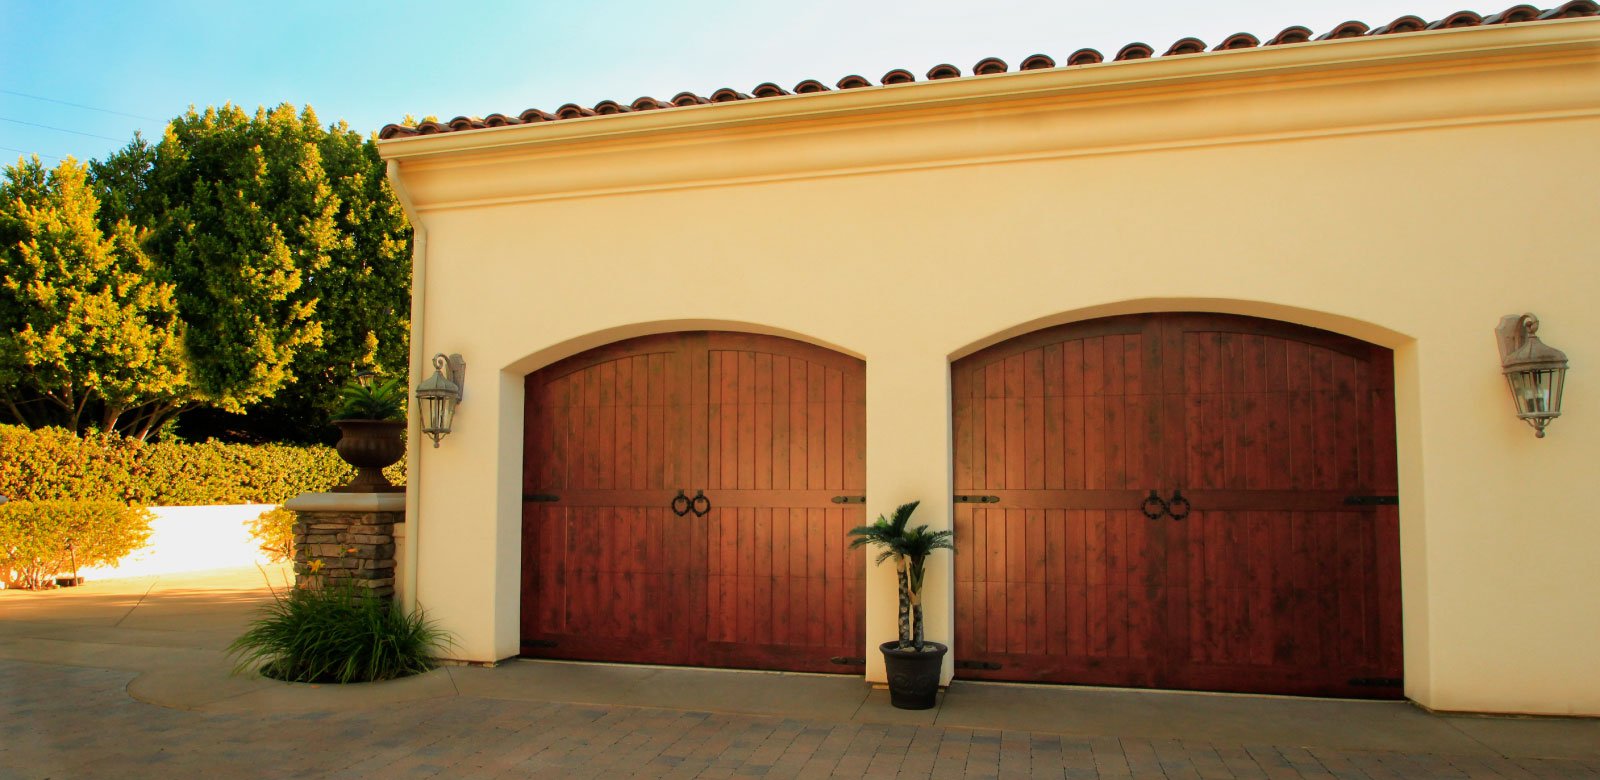 Garage doors unlimited gdu garage doors san diego garage doors unlimited rubansaba